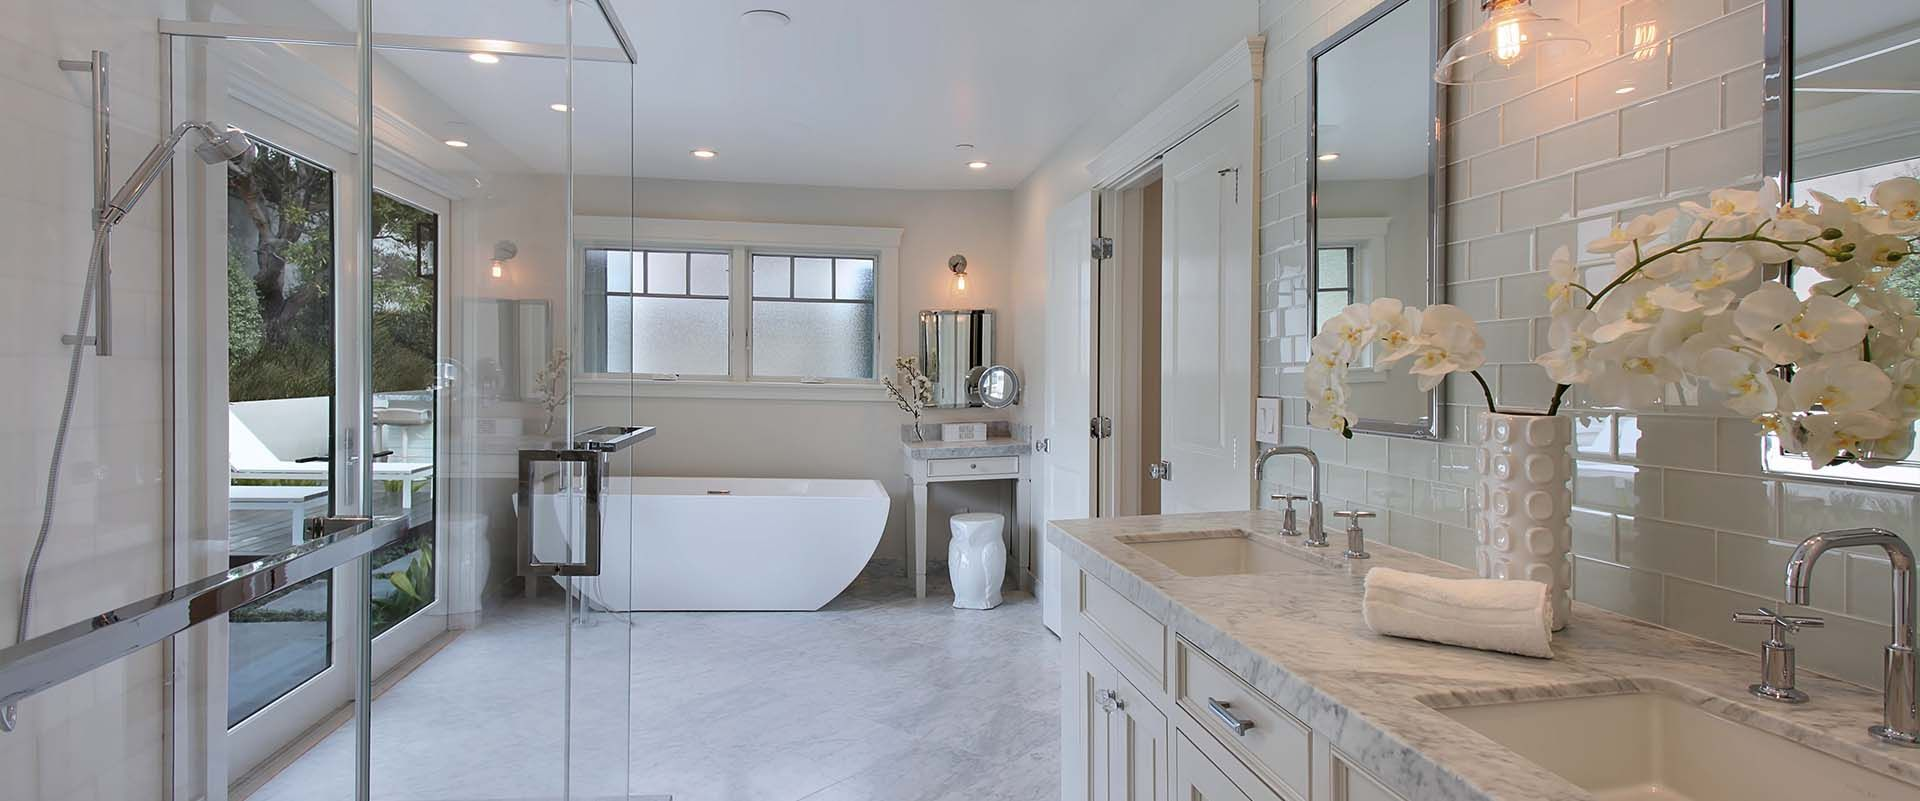 Quick Tips For Sealing And Cleaning Quartzite Countertops And